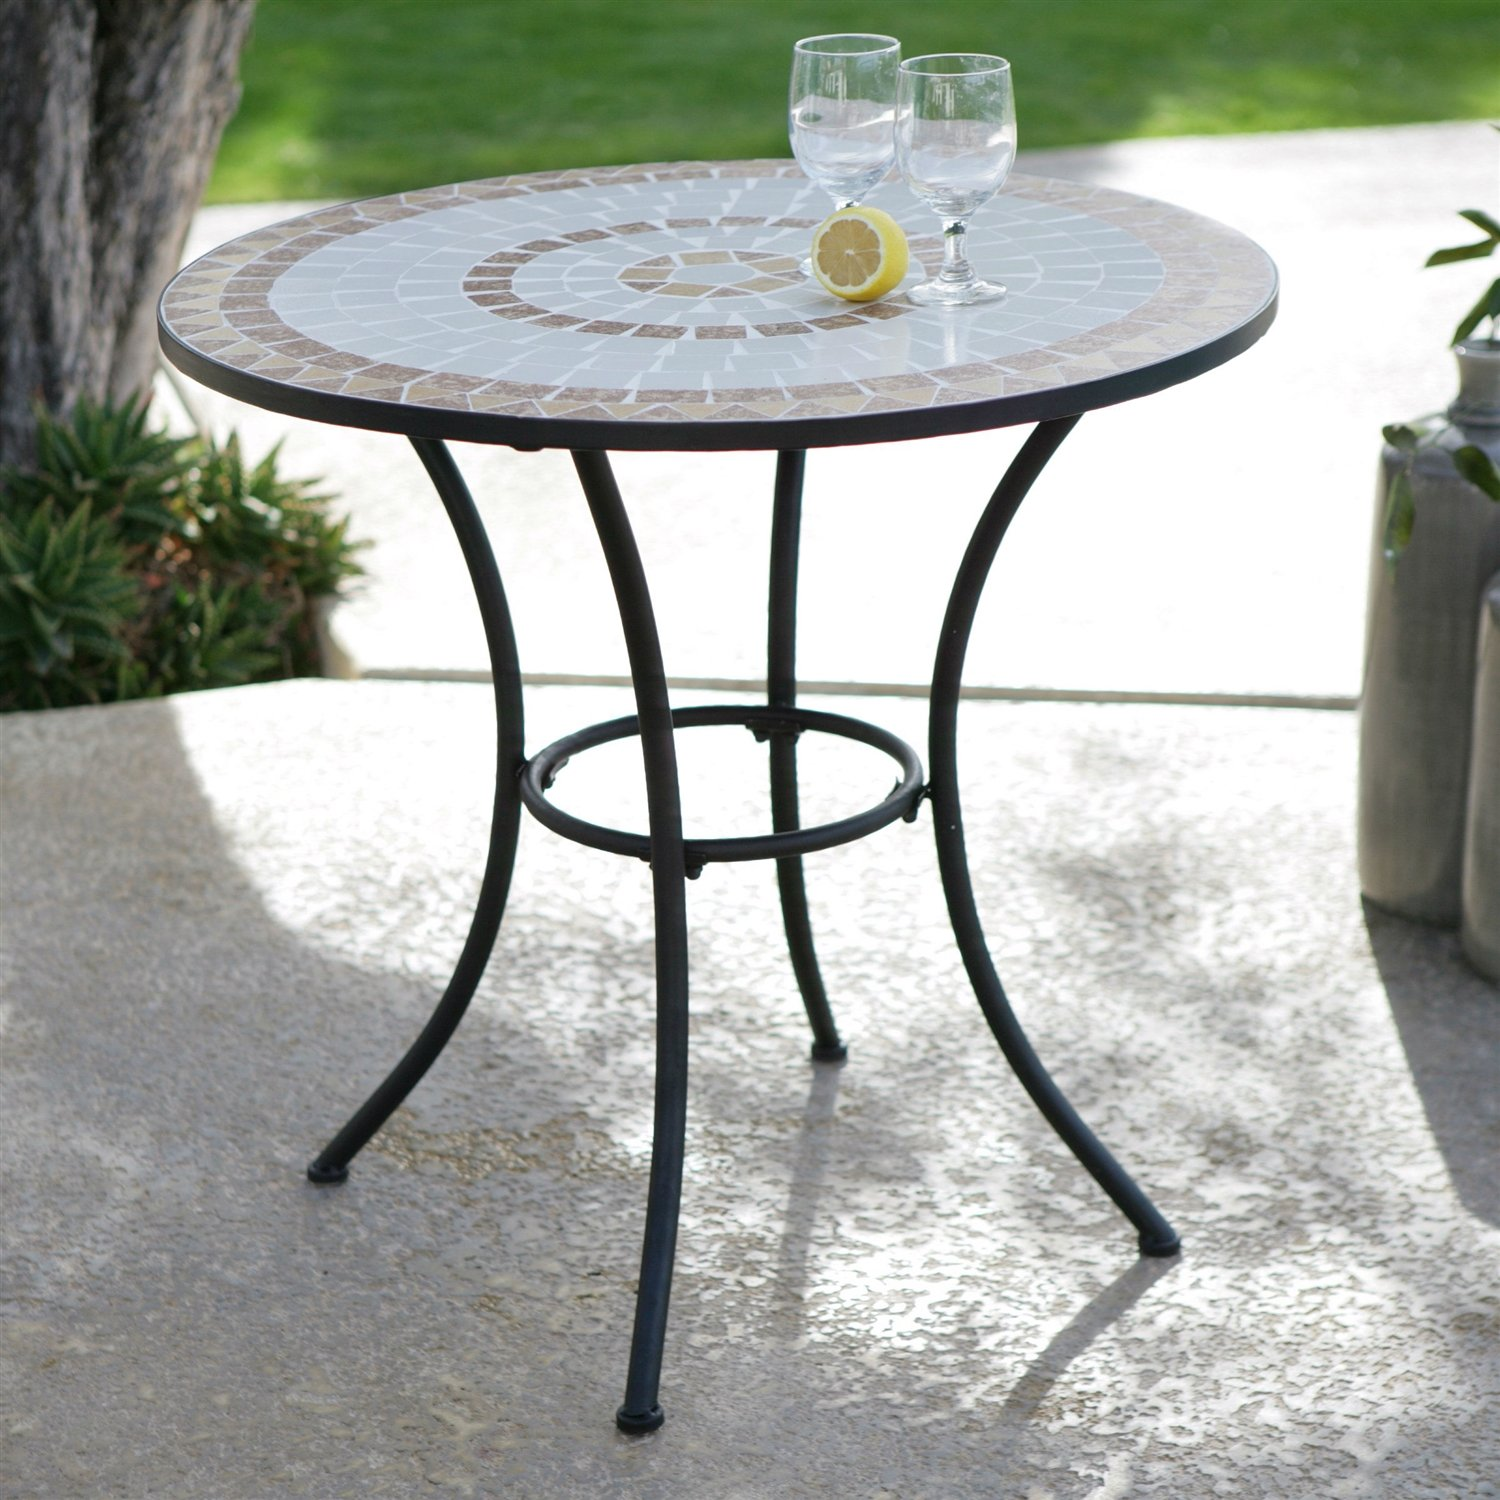 Inch Round Bistro Style Wrought Iron Outdoor Patio Table With - 30 inch round outdoor table